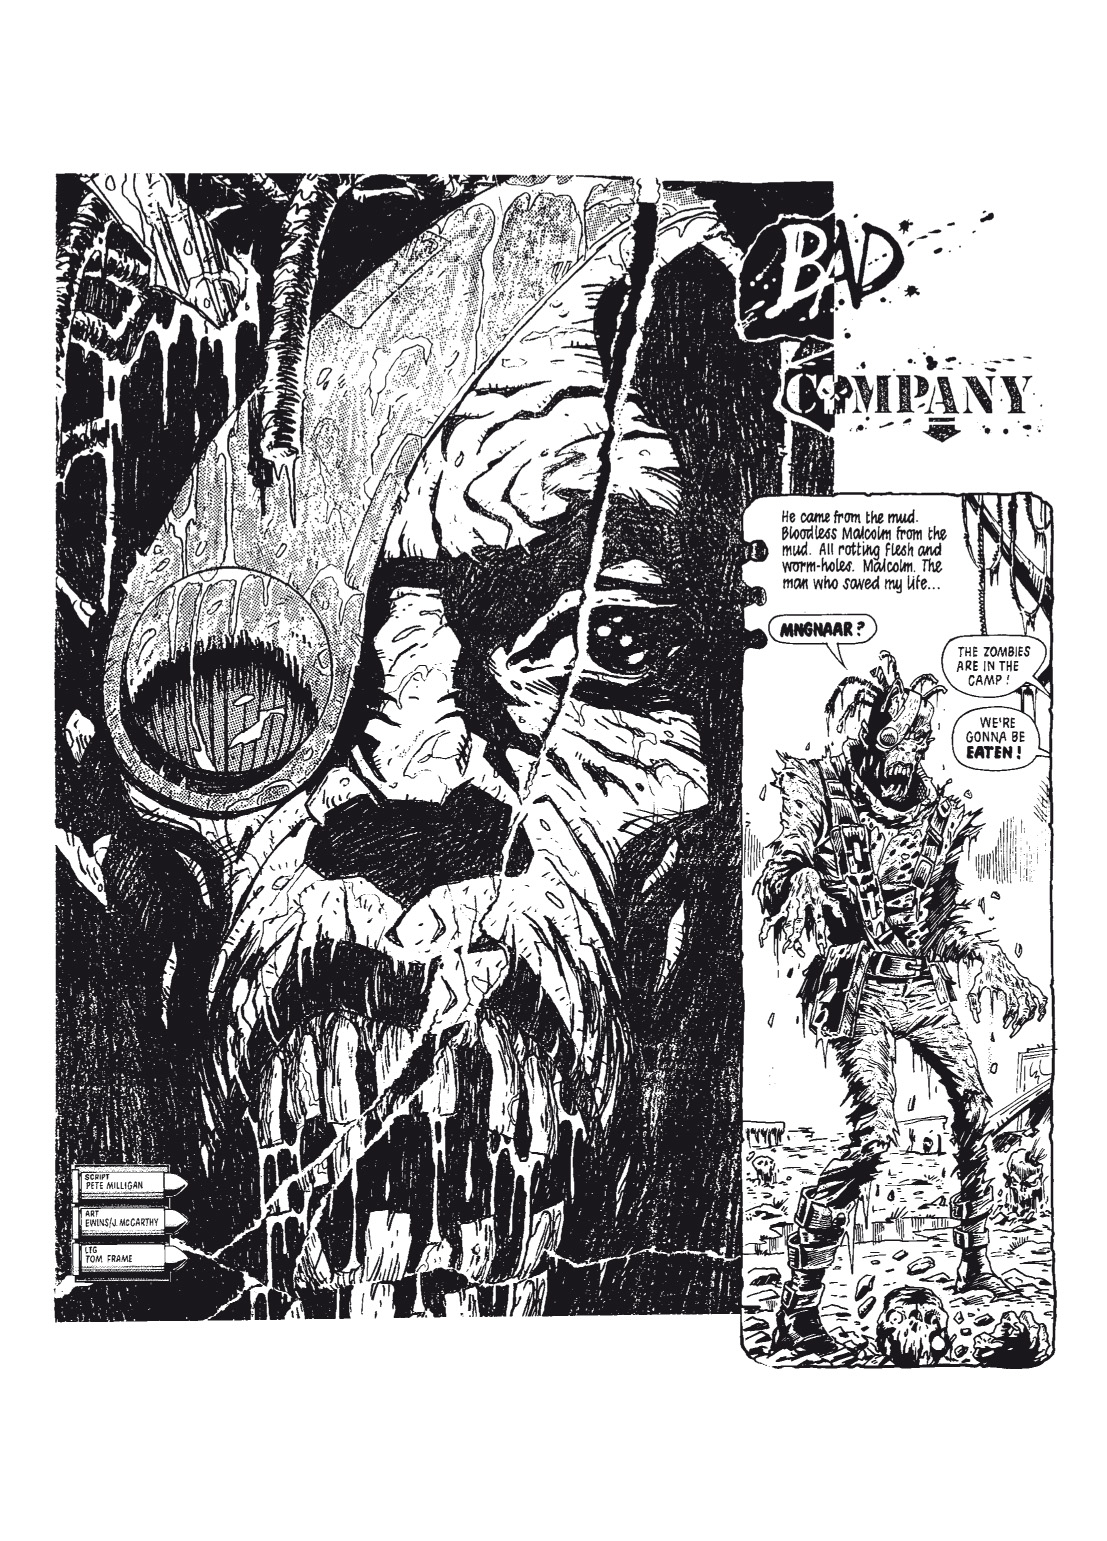 Read online The Complete Bad Company comic -  Issue # TPB - 74